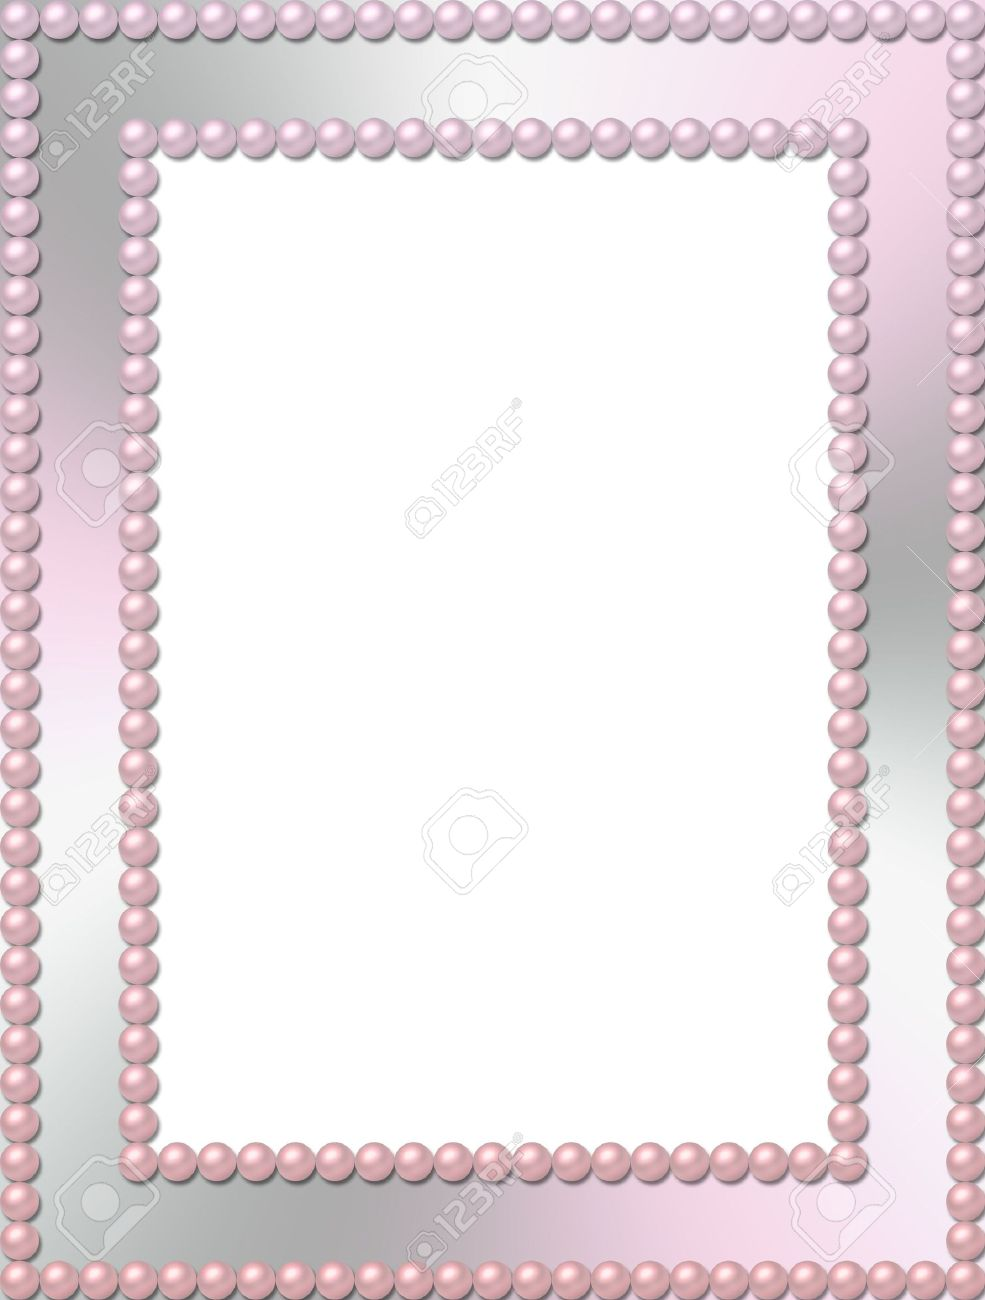 pearl picture frame Rectangular Pearl Frame Stock Photo, Picture And Royalty Free Image ...